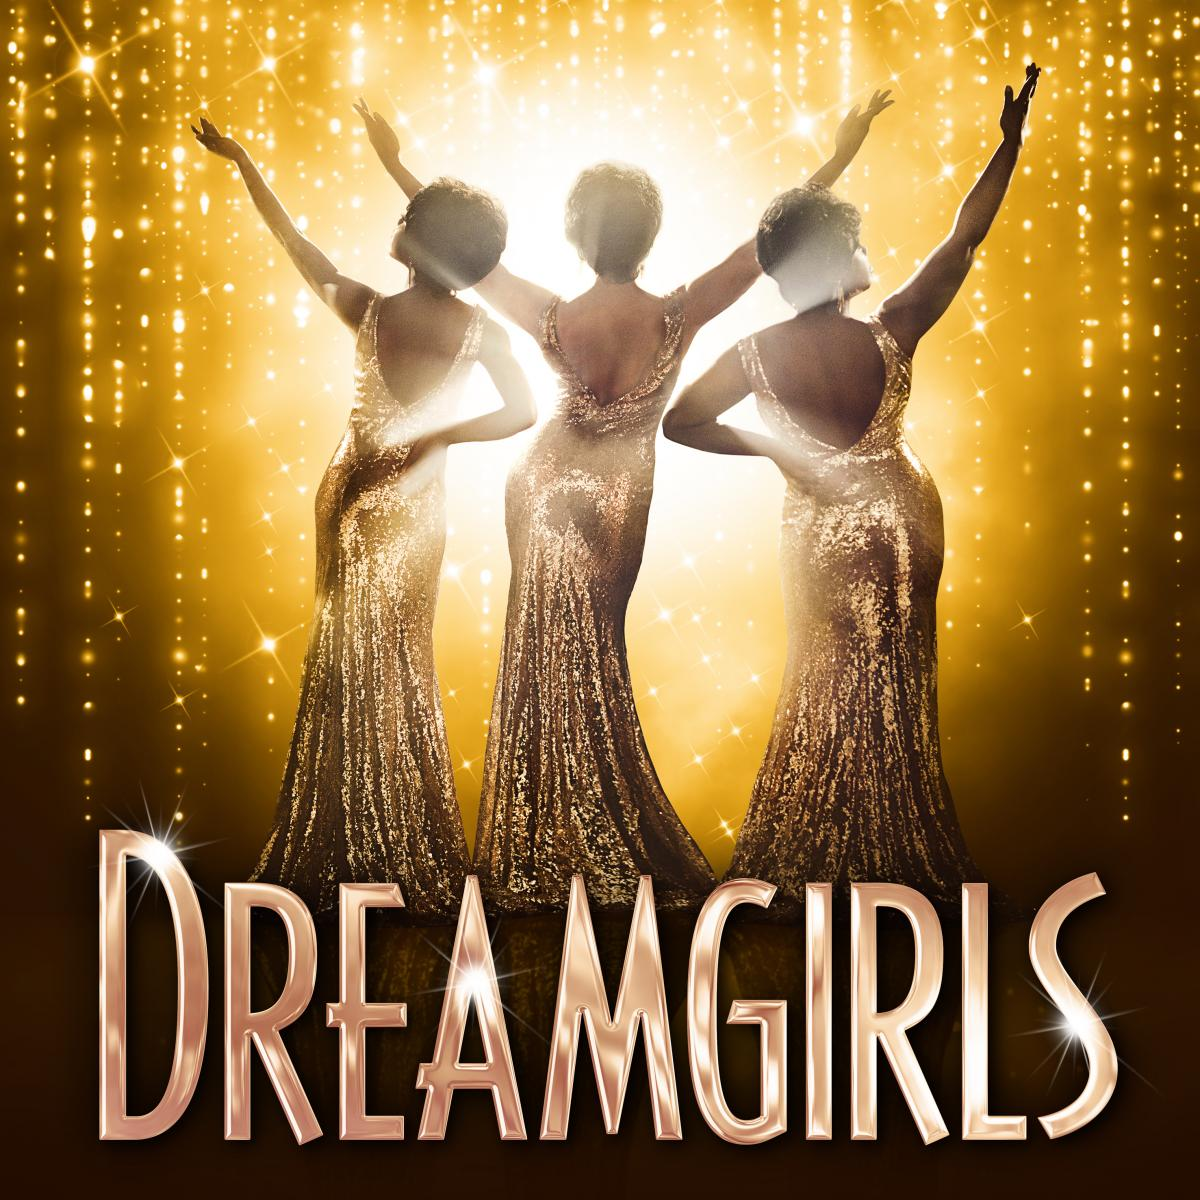 Dreamgirls announces UK Tour after an award-winning two years in the West End